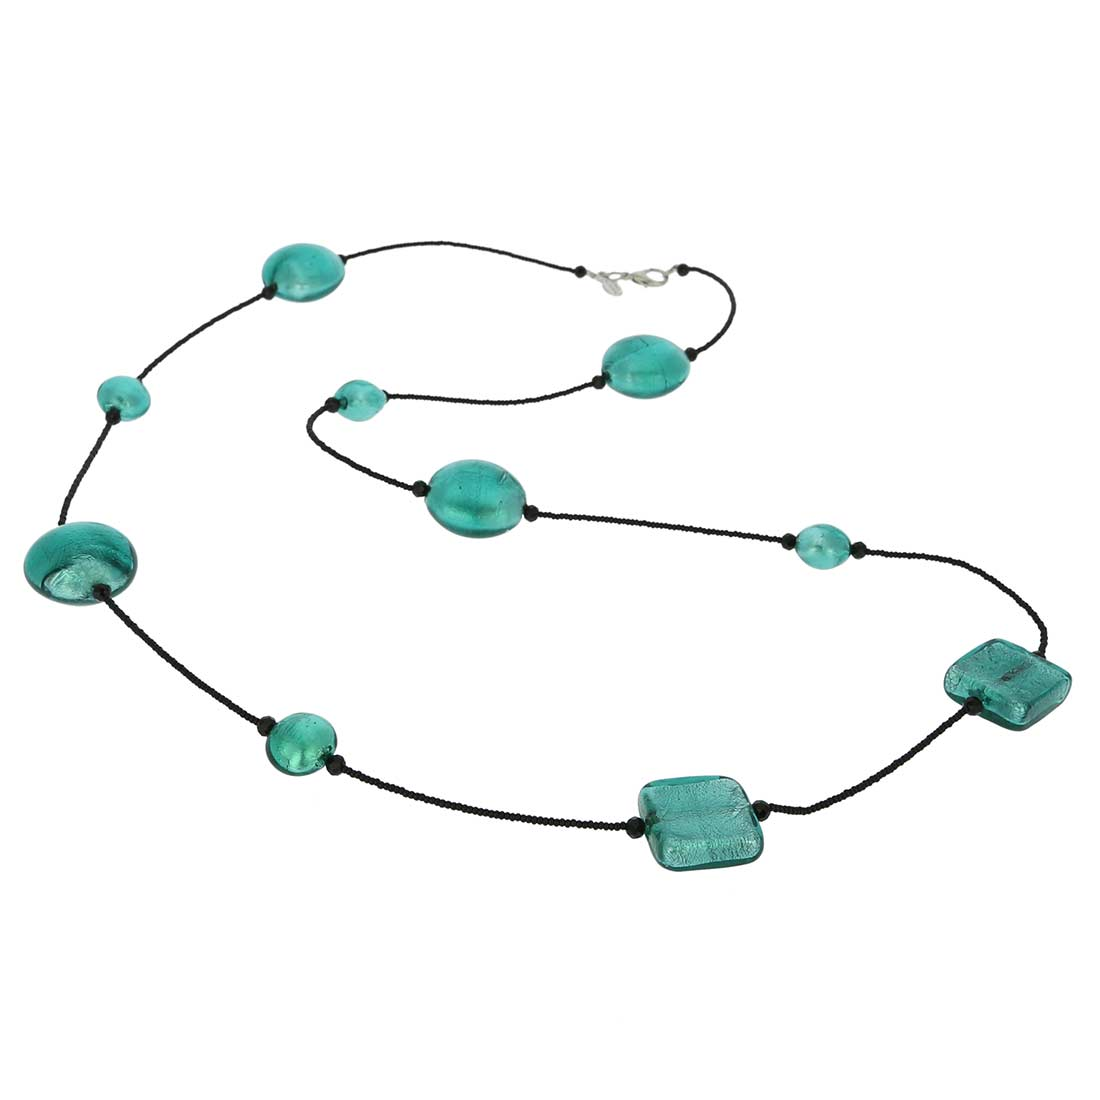 Lucia Murano Necklace - Ocean Green